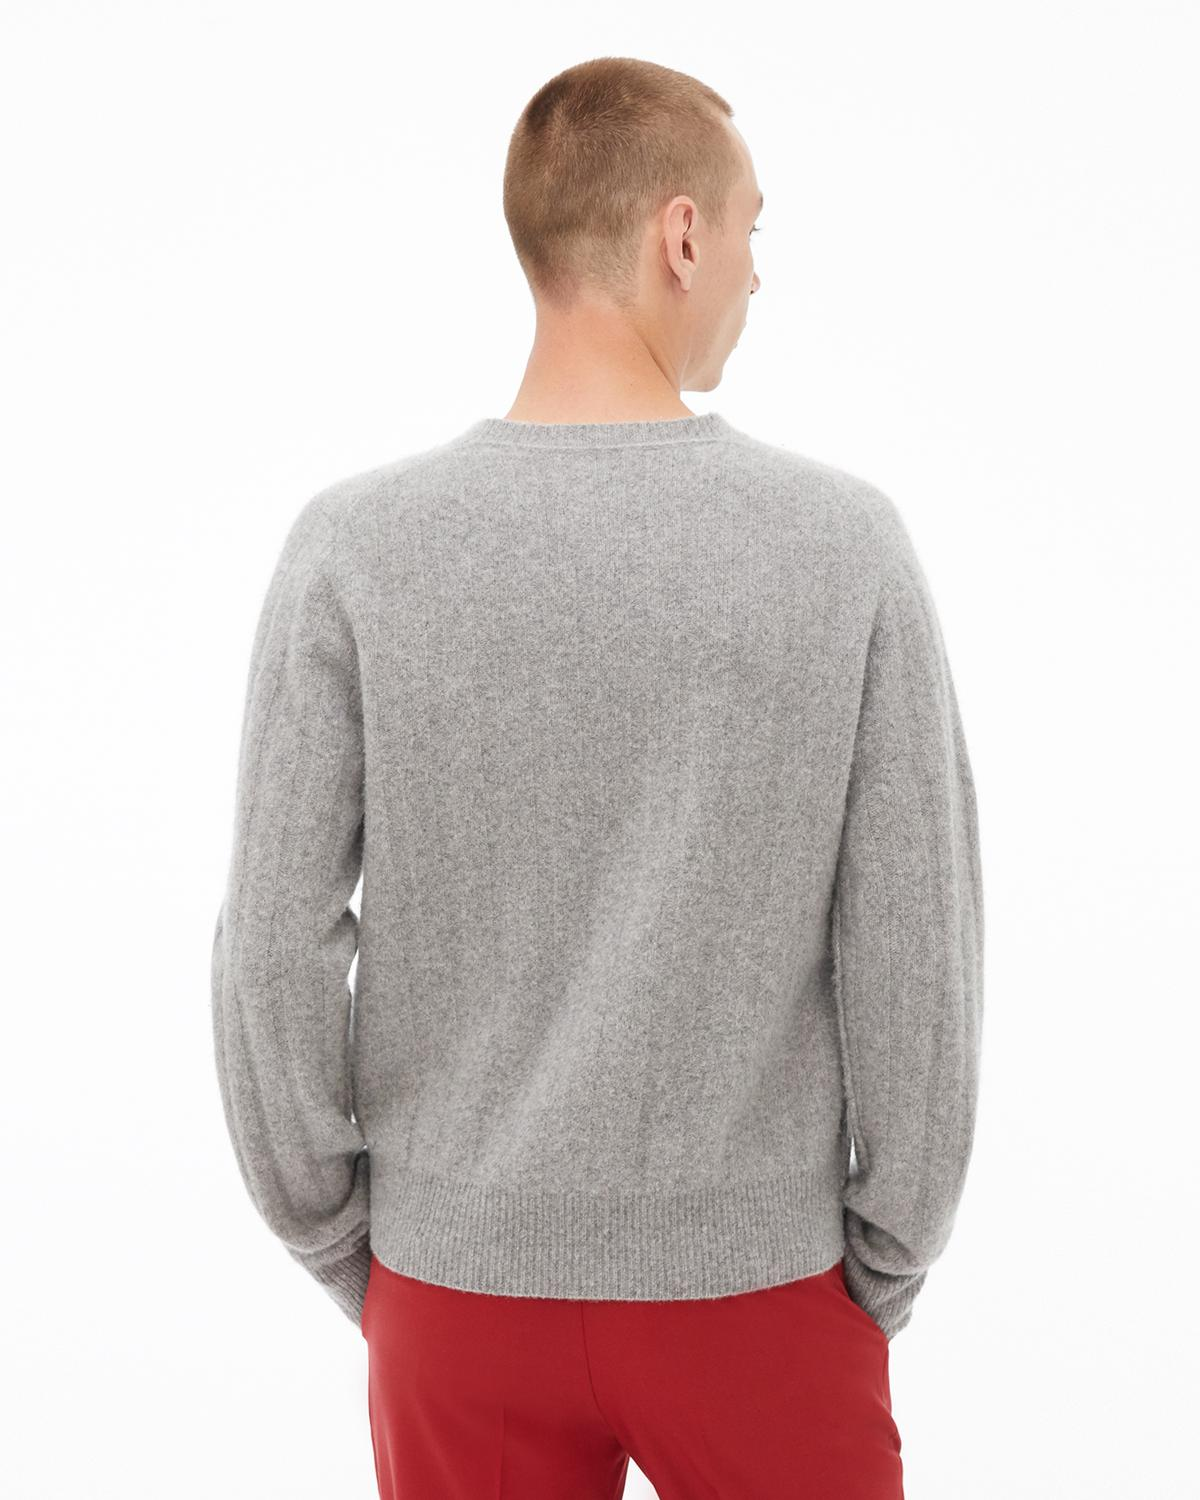 Long Sleeve Felted Crewneck